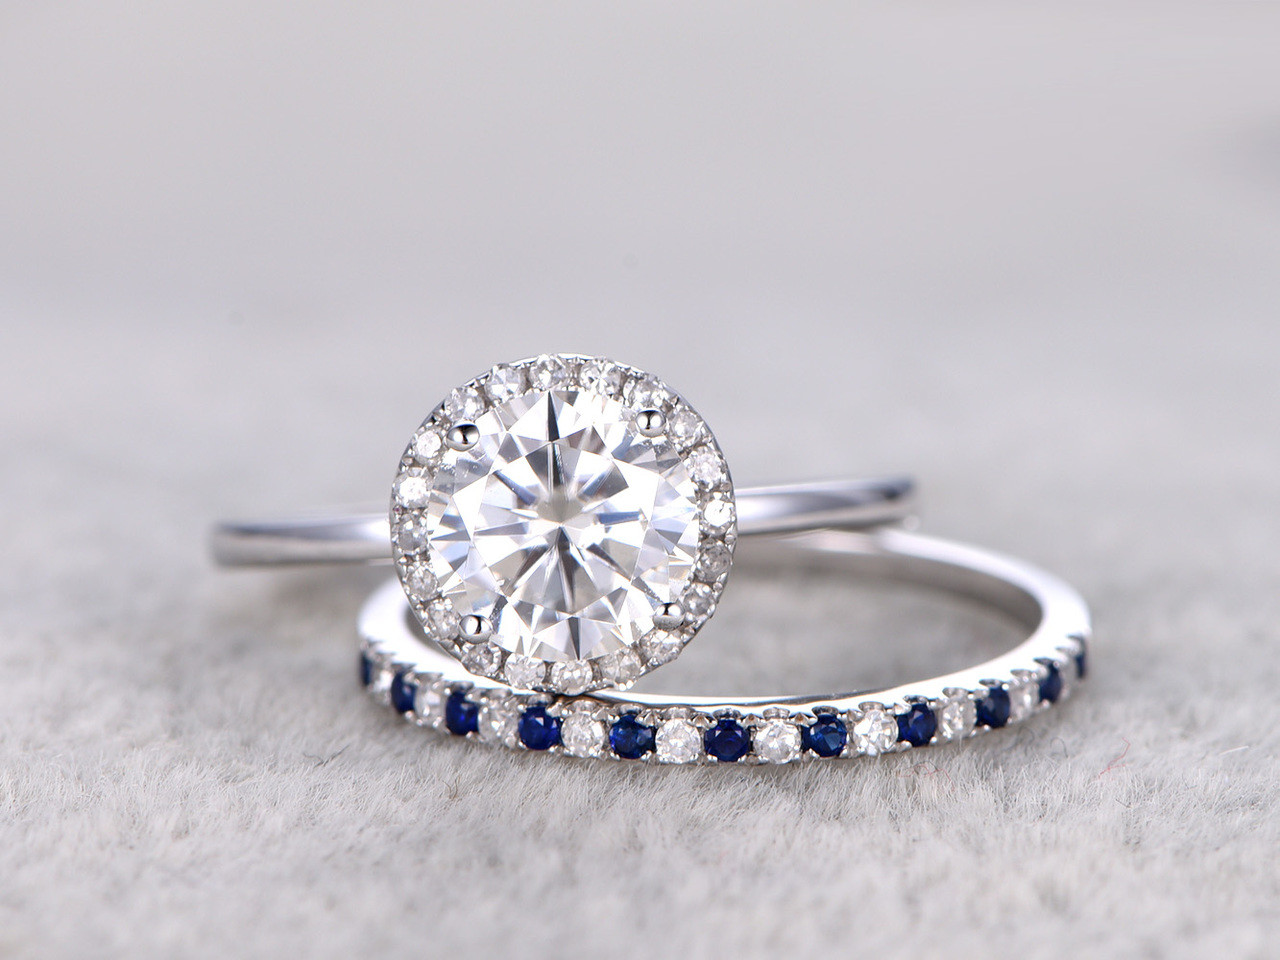 Moissanite engagement ring set